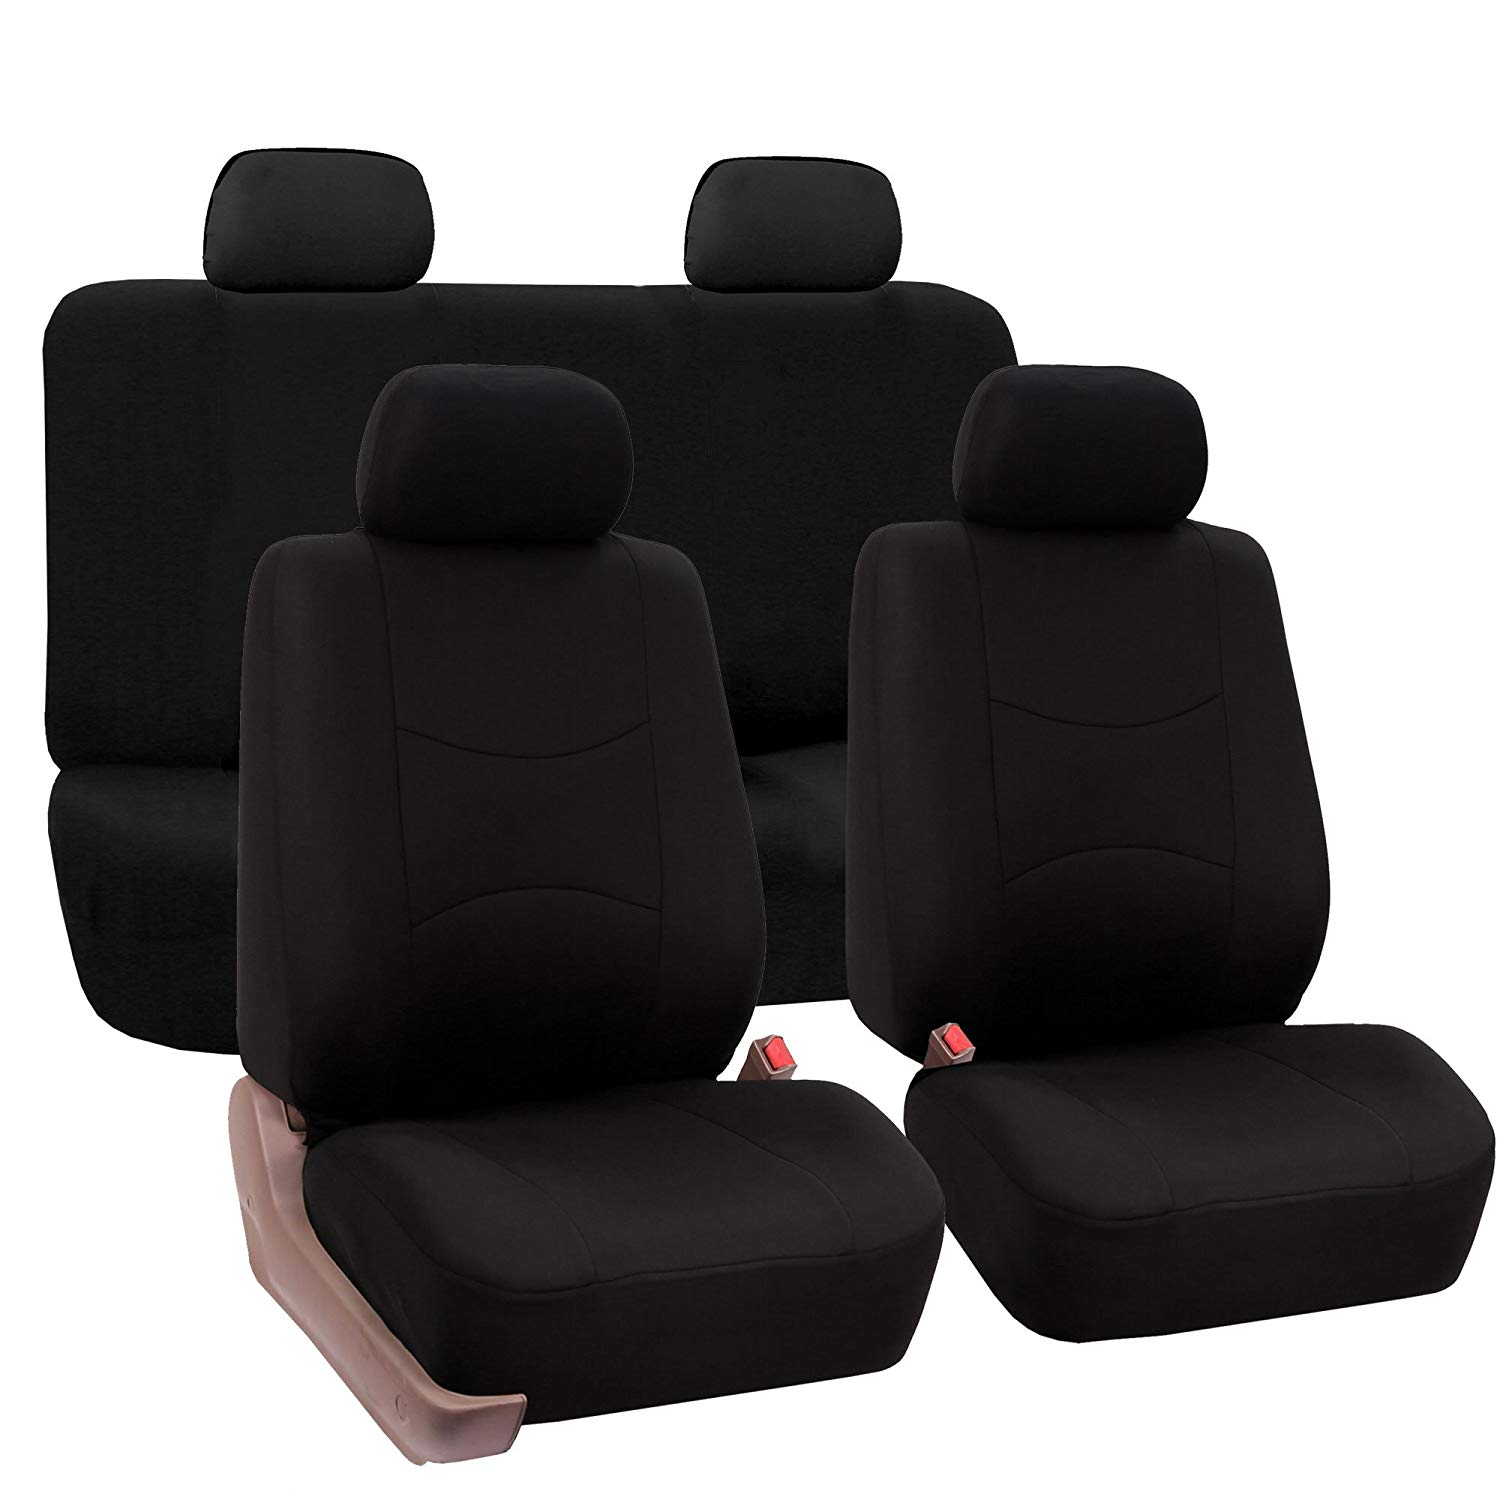 FH-FB050114 Group Universal Fit Car Seat Cover